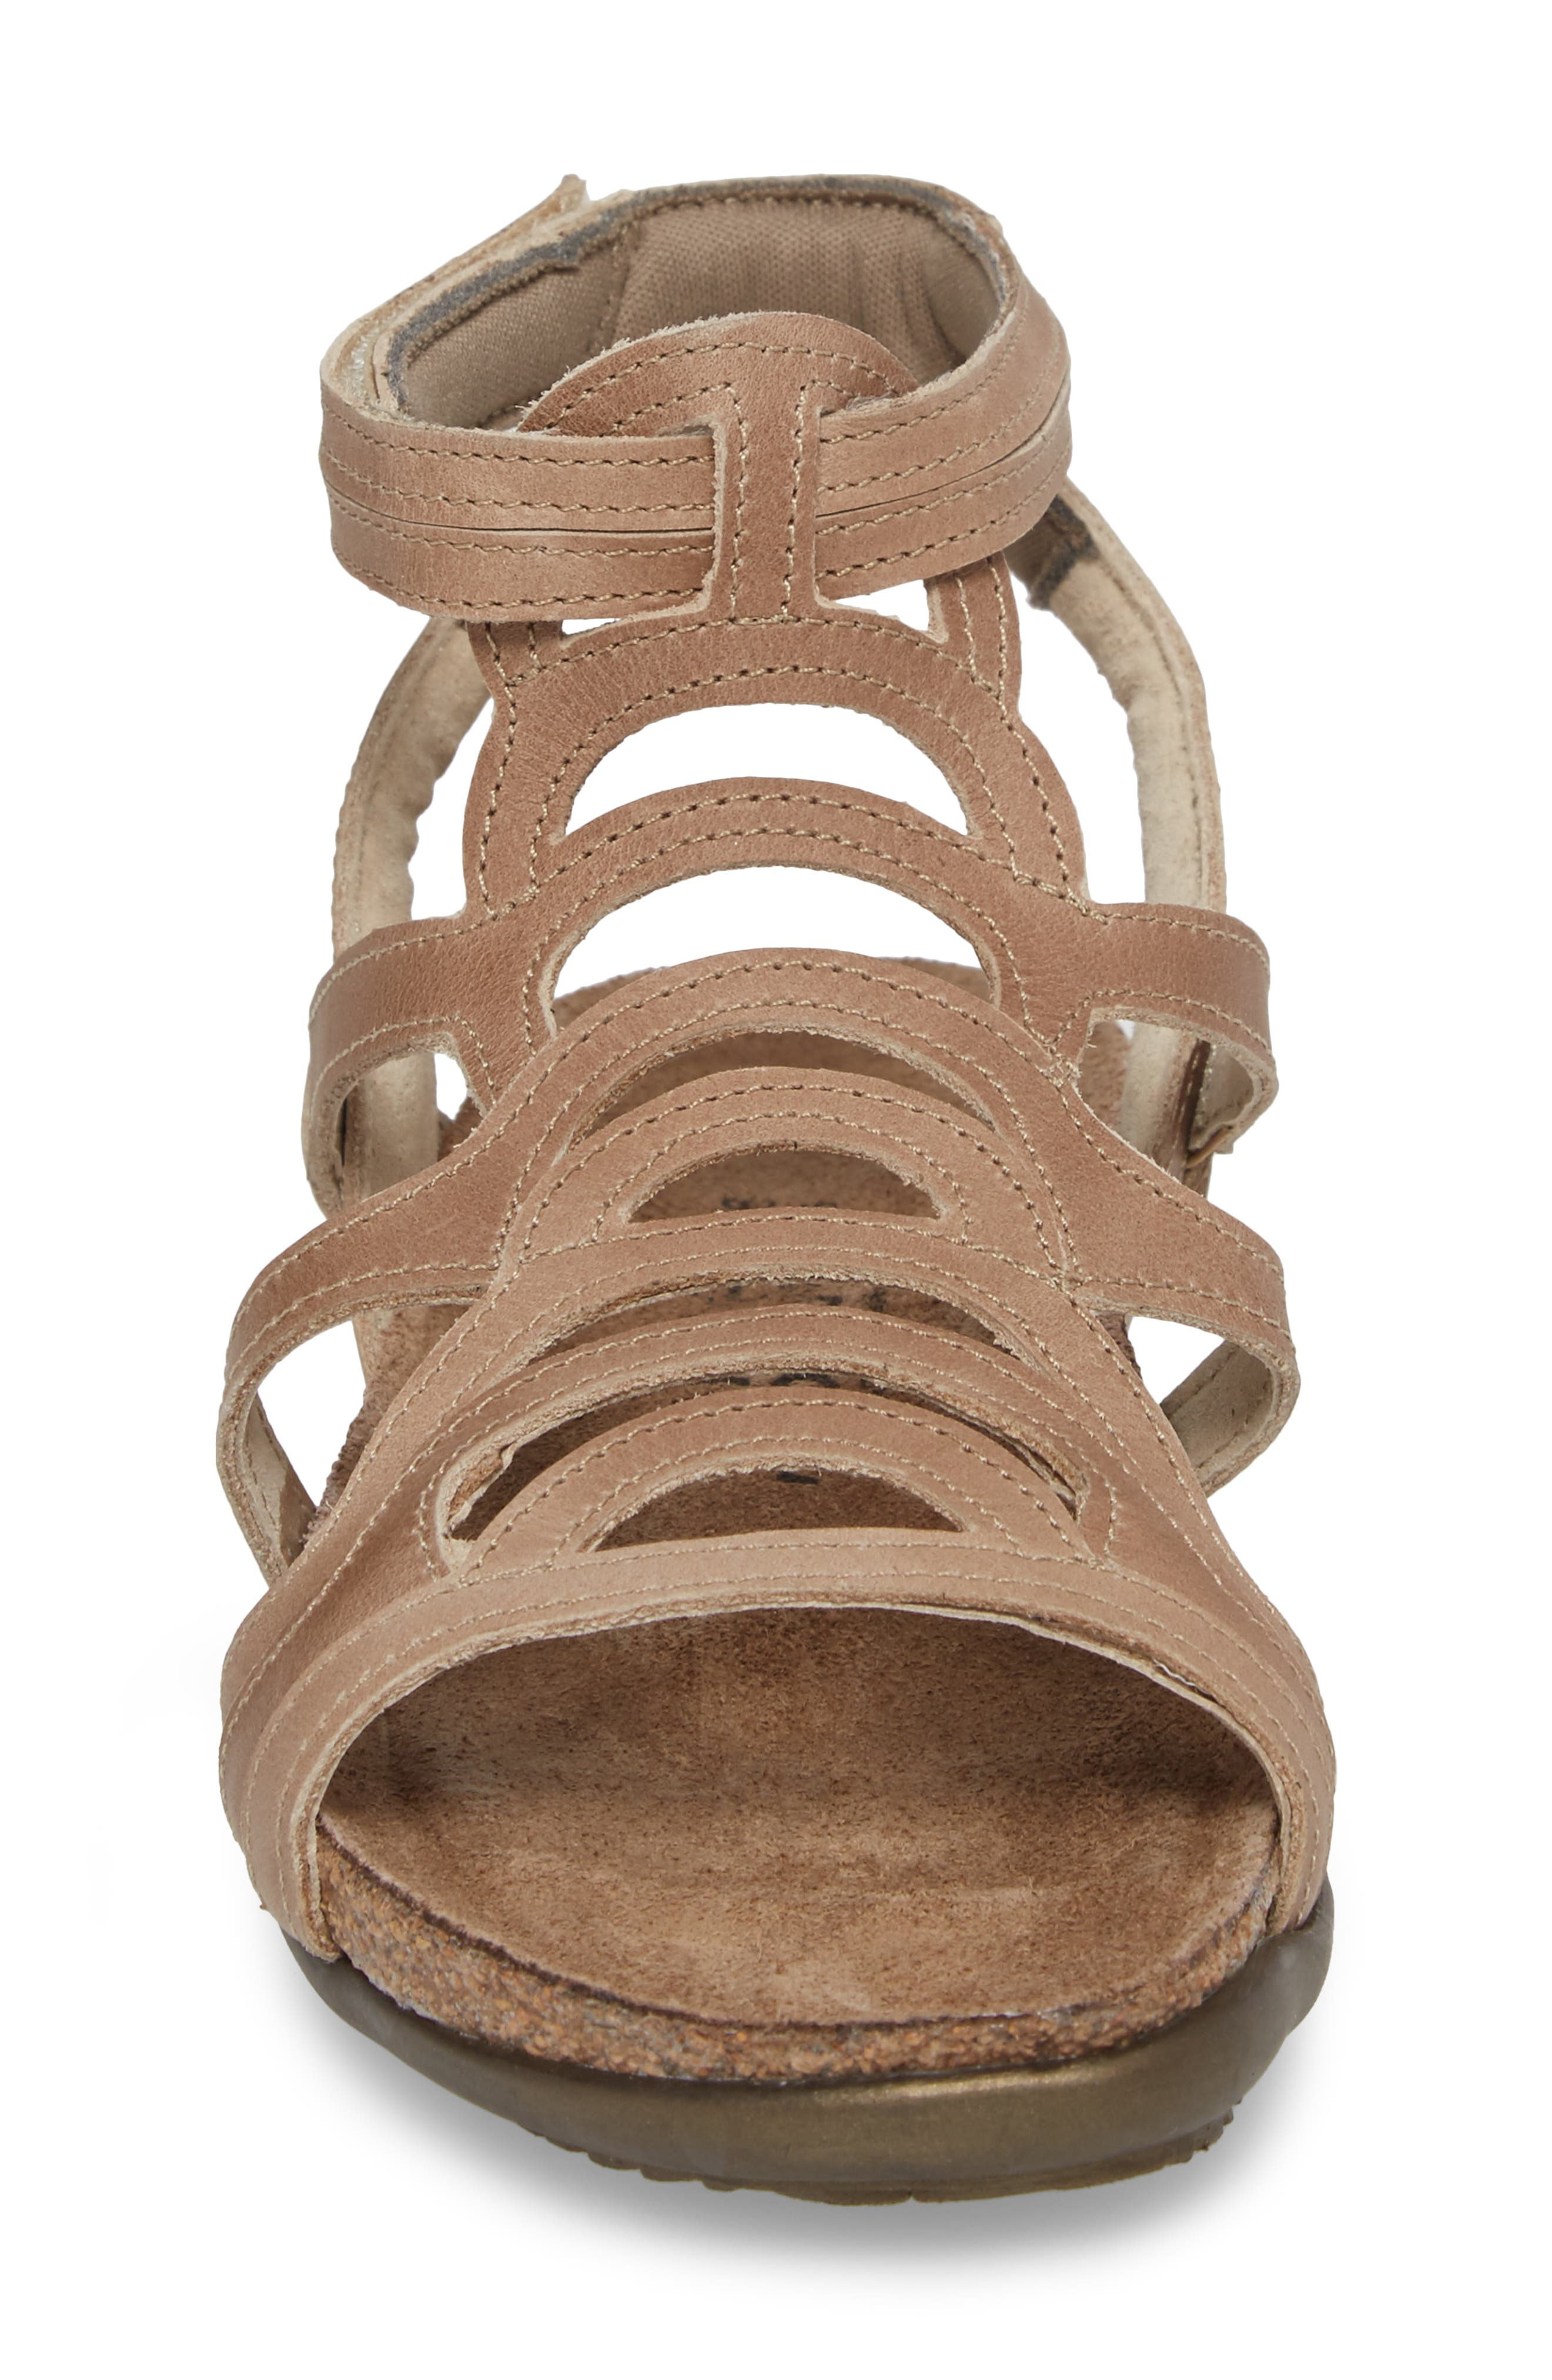 'Sara' Gladiator Sandal,                             Alternate thumbnail 4, color,                             KHAKI BEIGE LEATHER